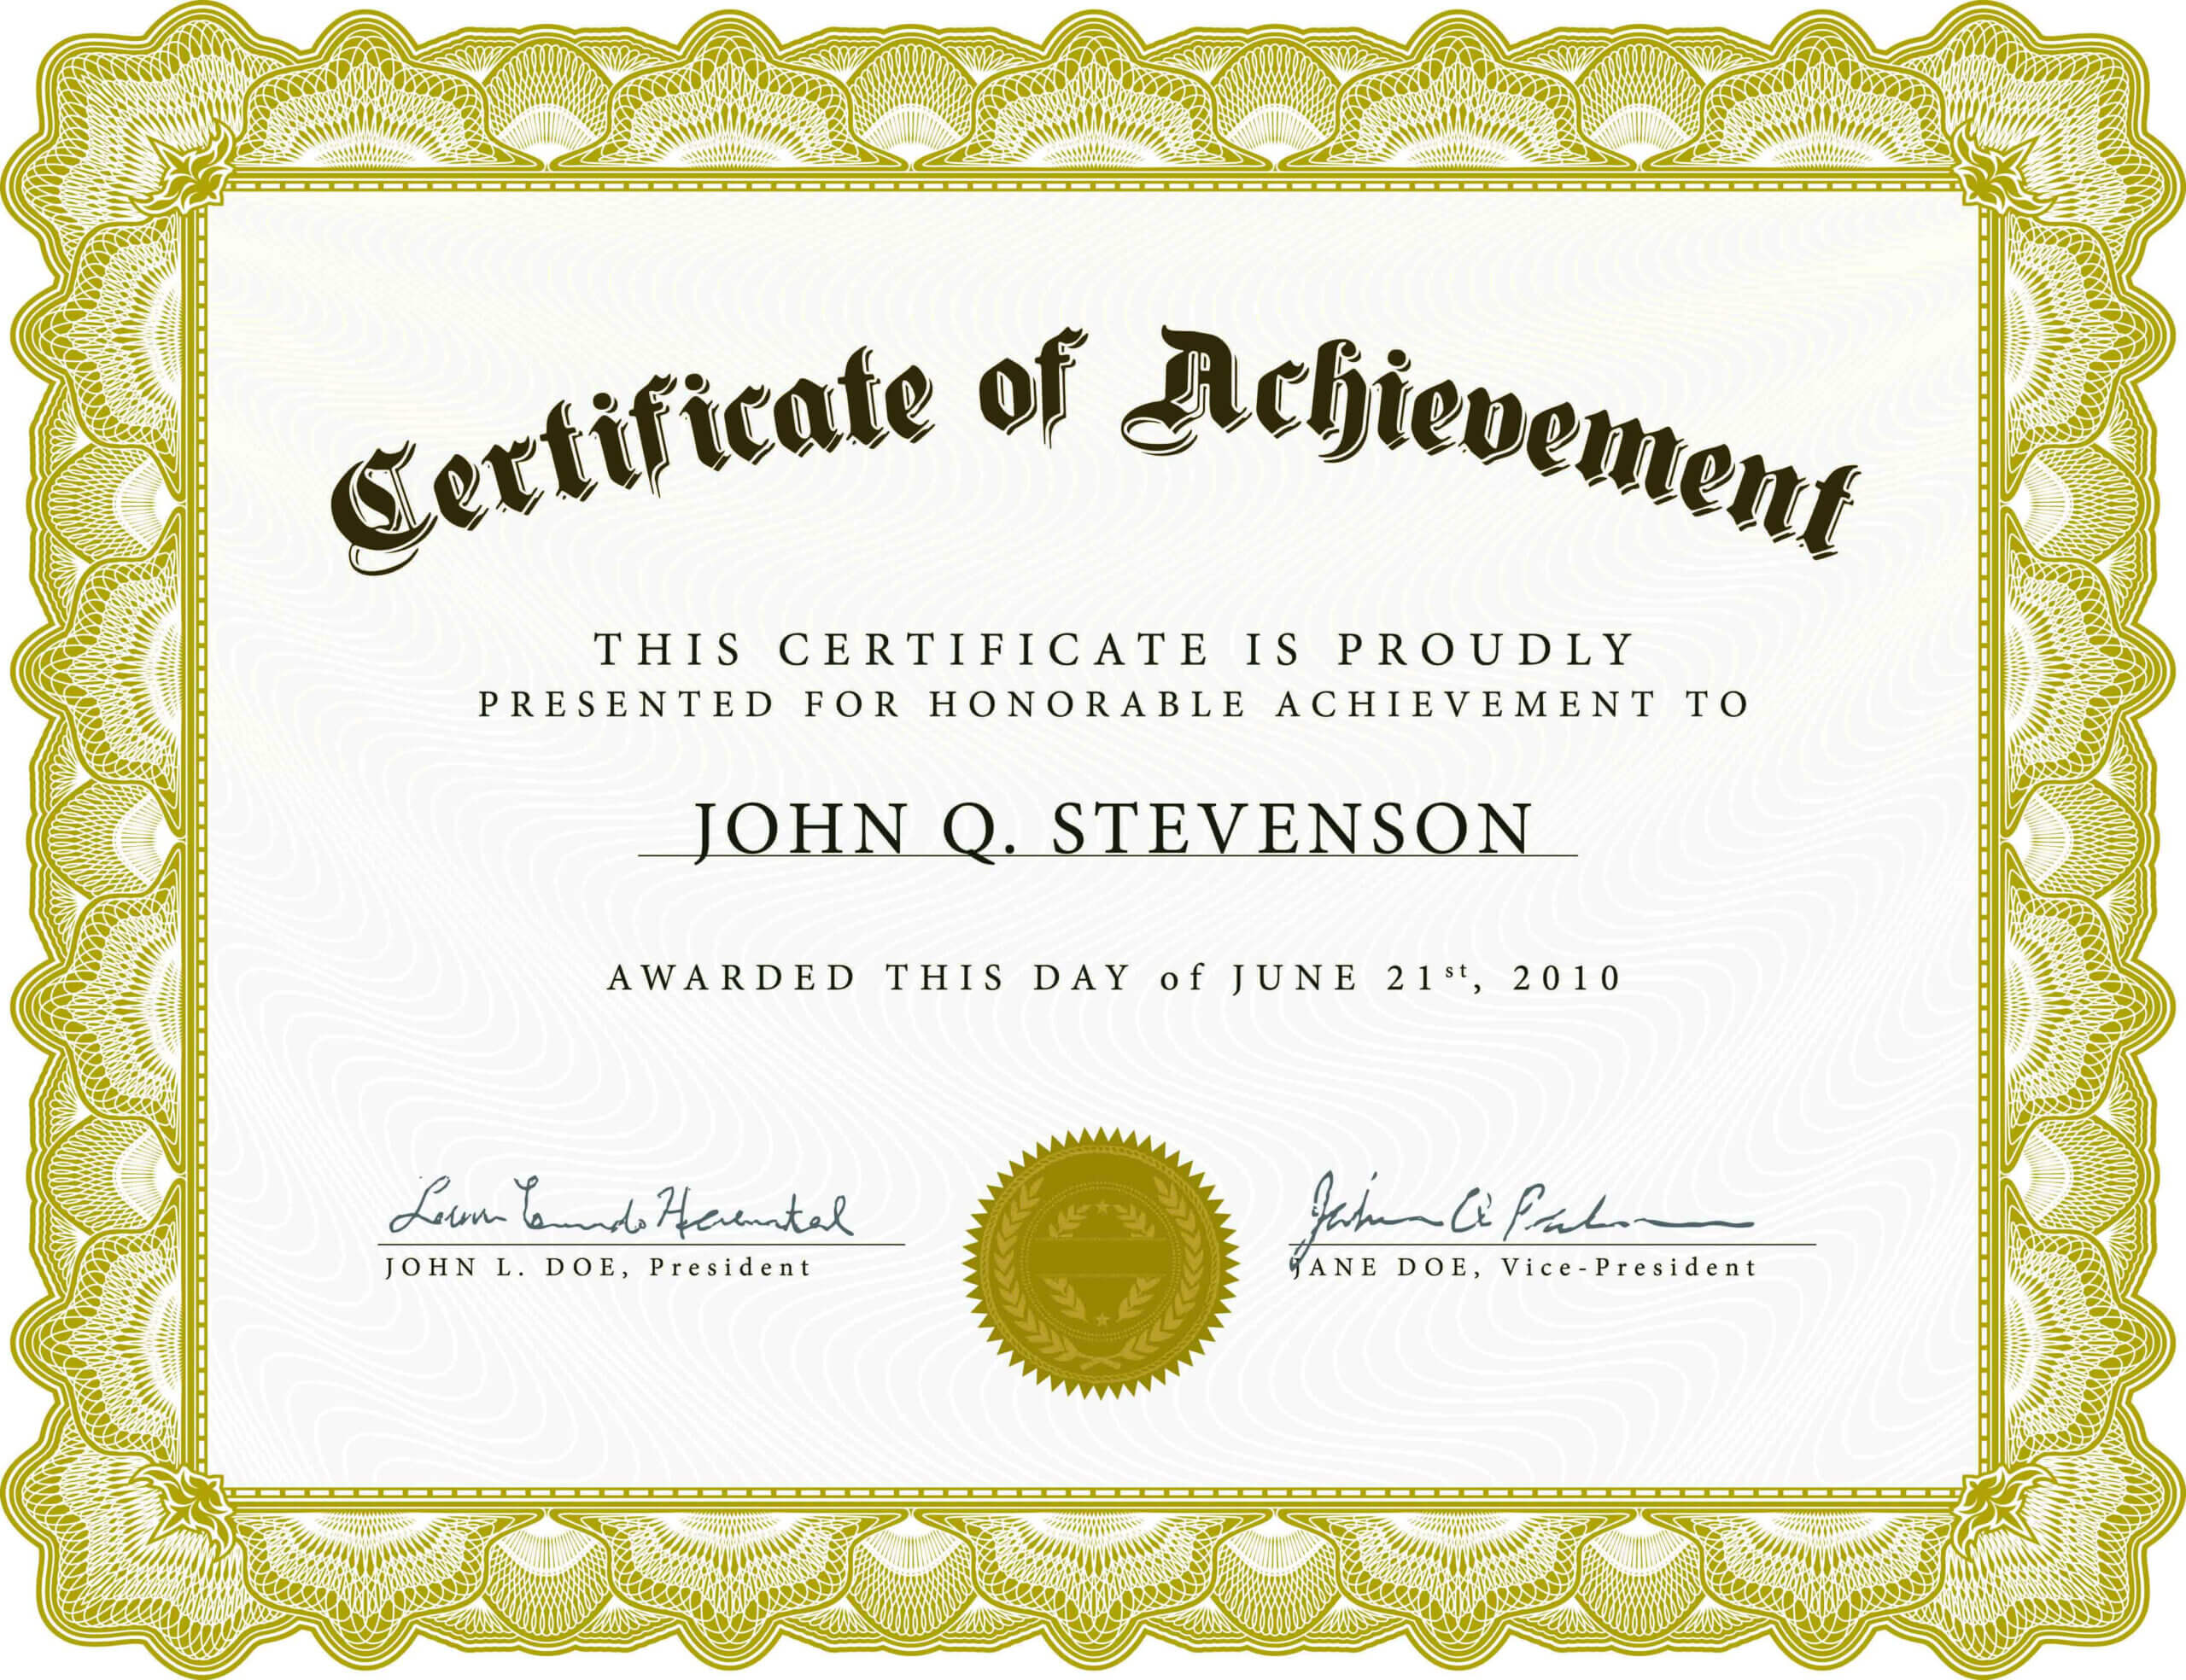 002 Word Certificate Of Achievement Template Outstanding Regarding Army Certificate Of Achievement Template